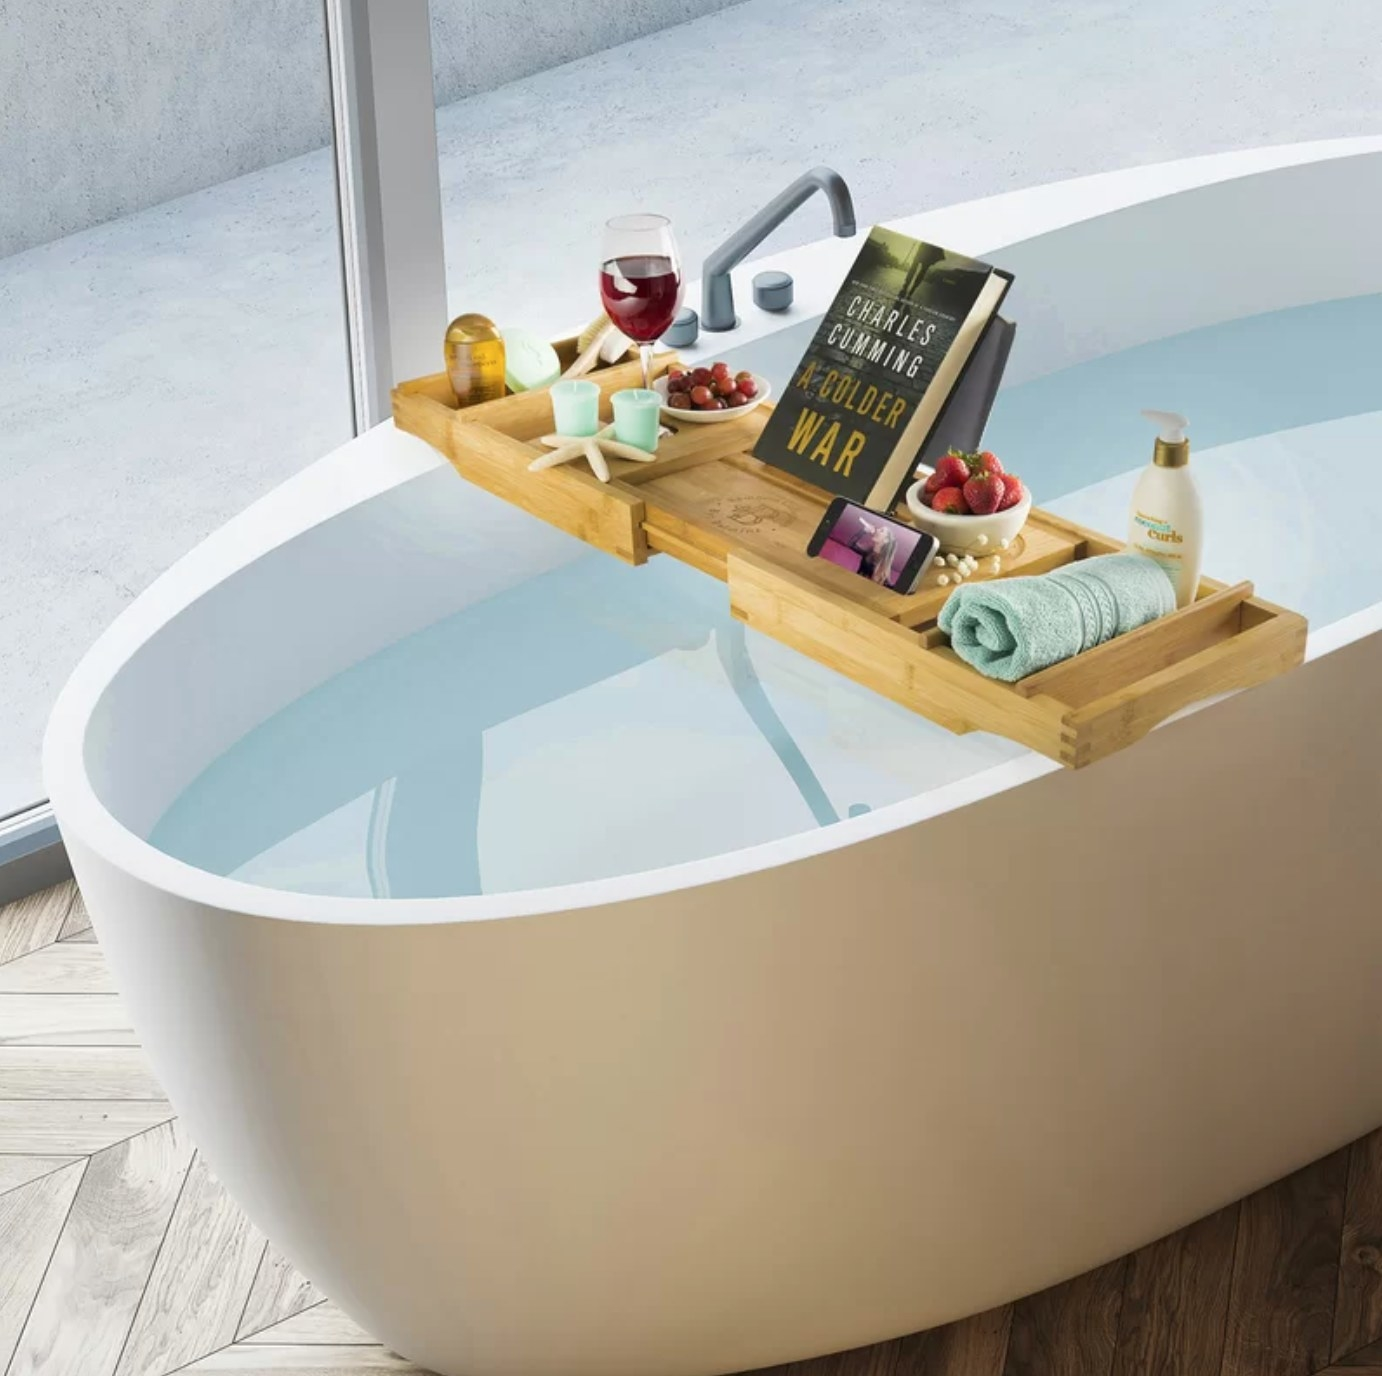 The bathtub tray in bamboo holding wine, fruit, and towels